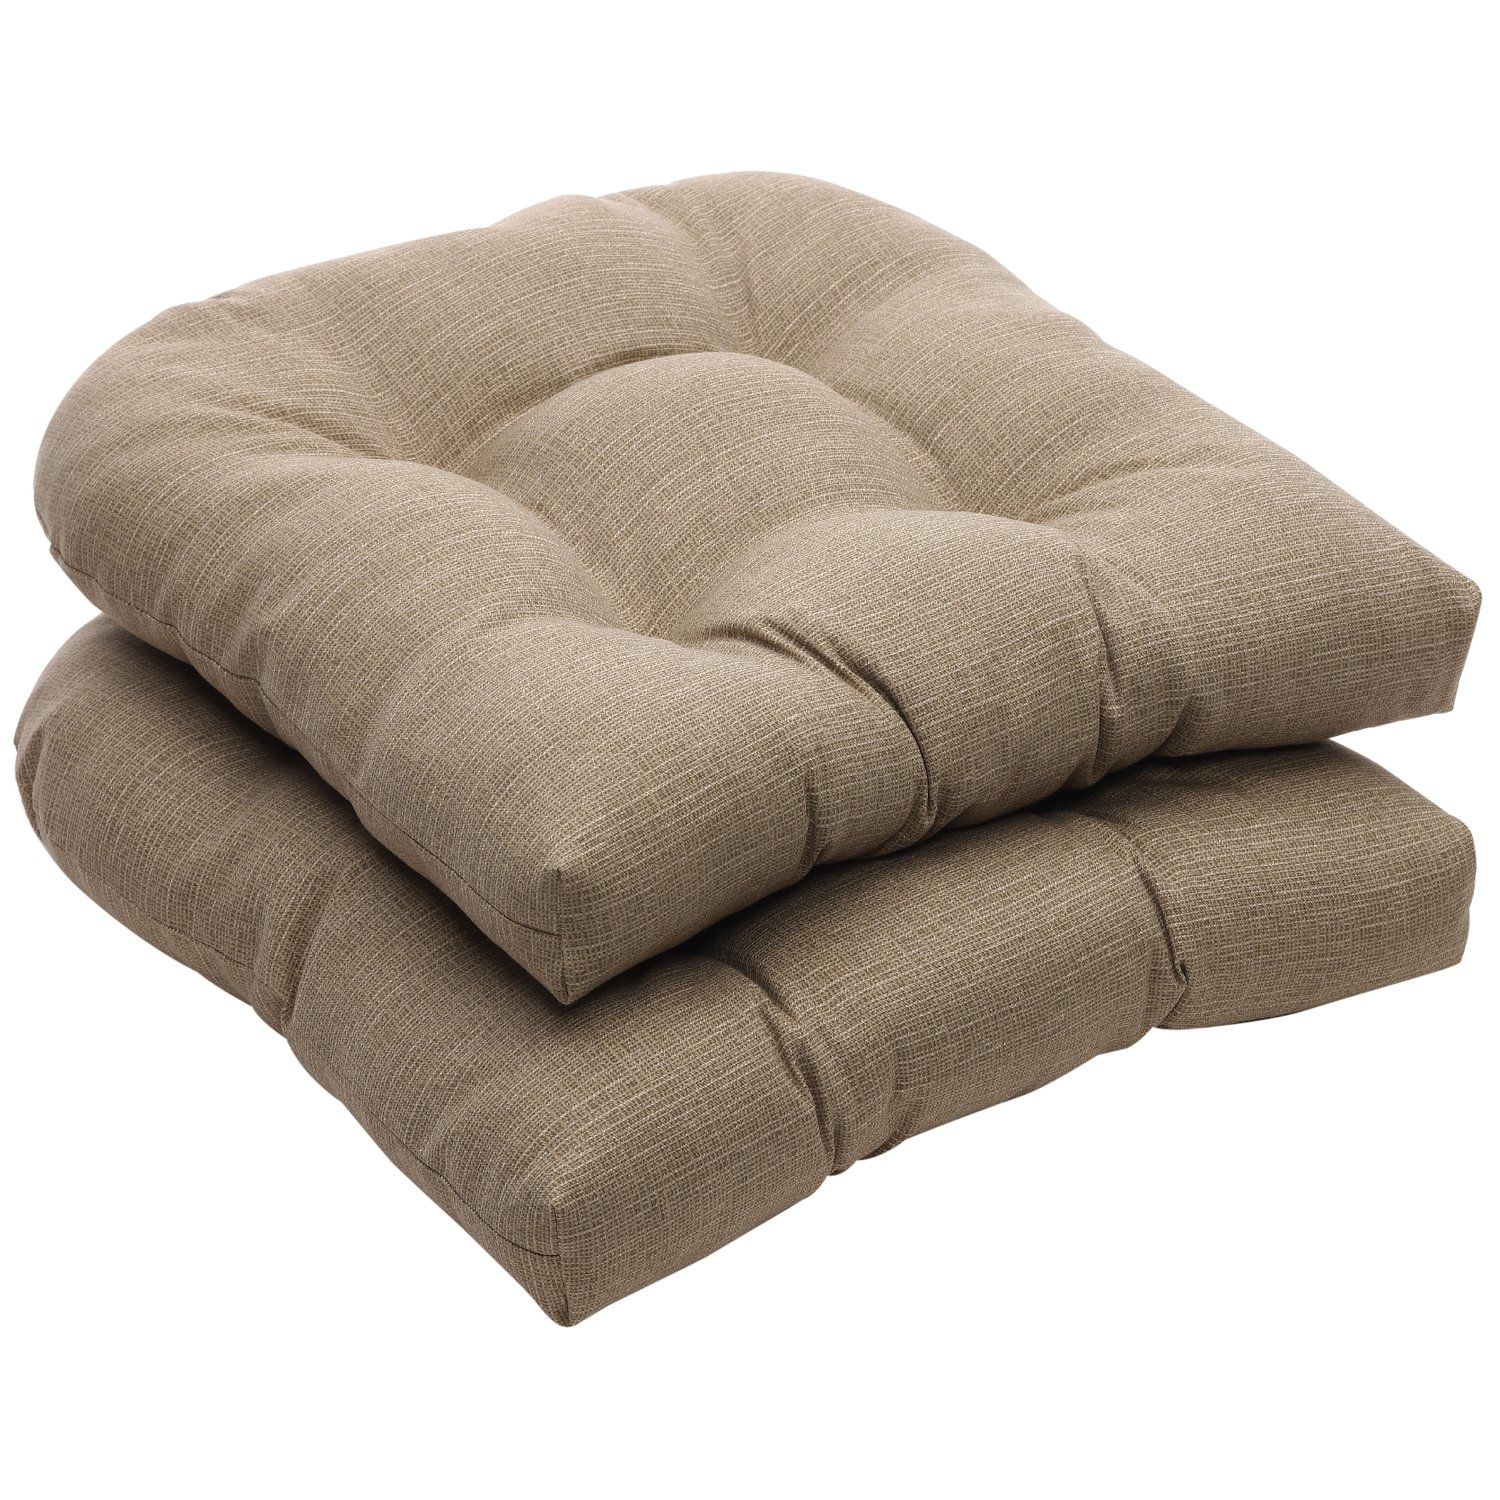 Pillow Perfect Indoor/Outdoor Taupe Textured Solid Wicker Seat Cushions,  2-Pack - Patio Furniture Cushions Amazon.com